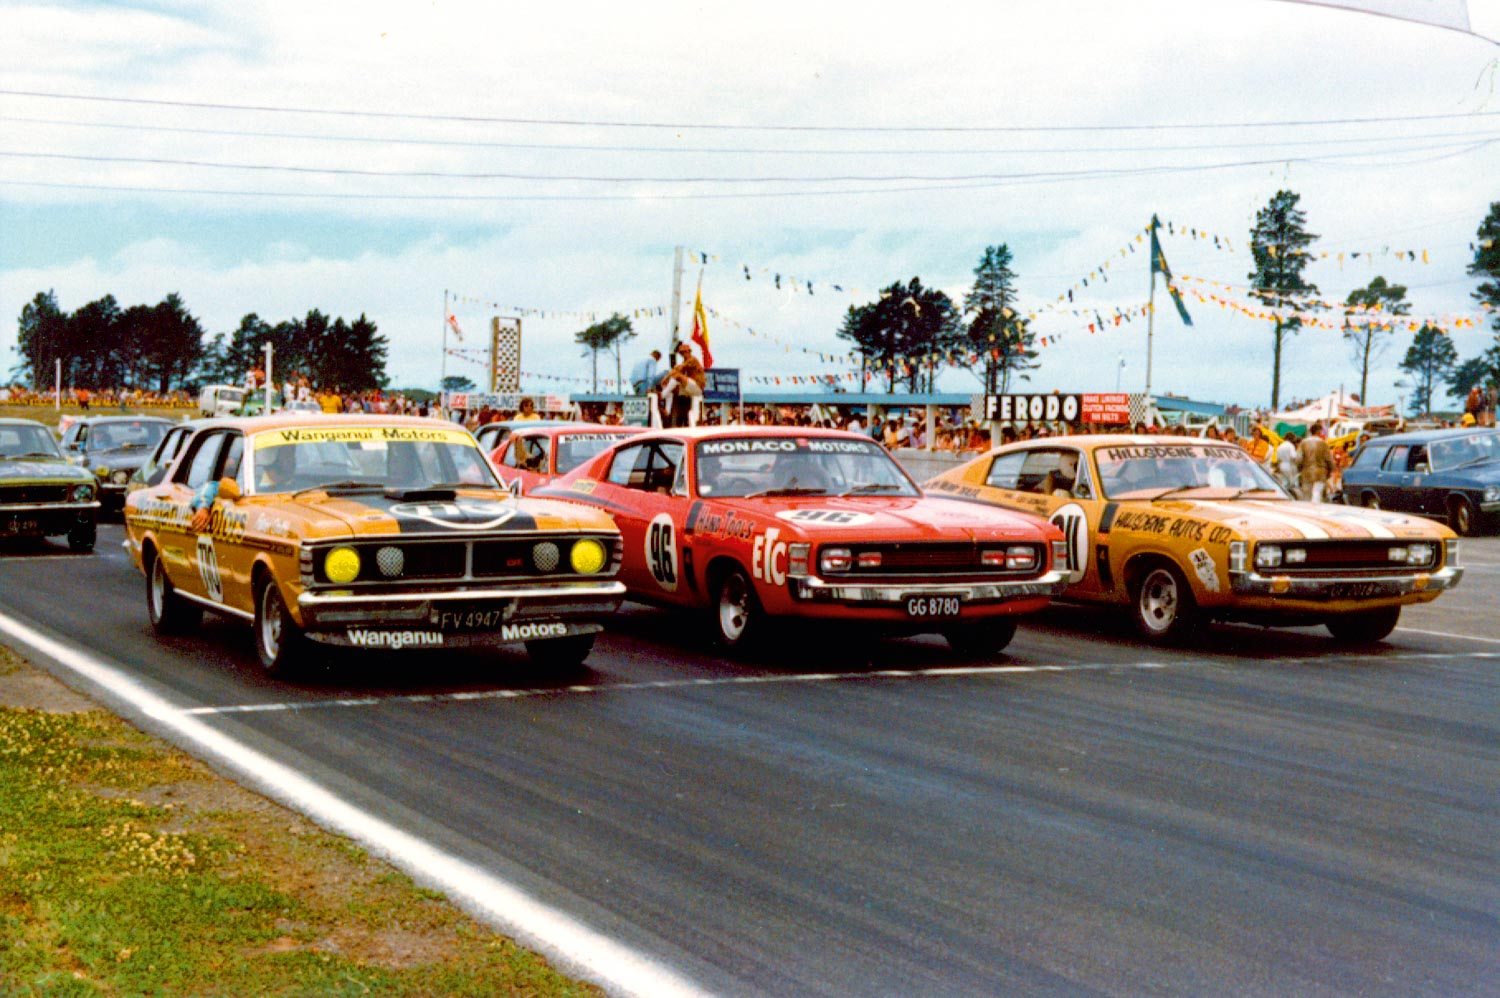 Production racing muscle cars. Patrick Smith in the Falcon GT-HO PhaseIII lines up next to the E49 Chargers of Rodger Anderson and Leo Leonard